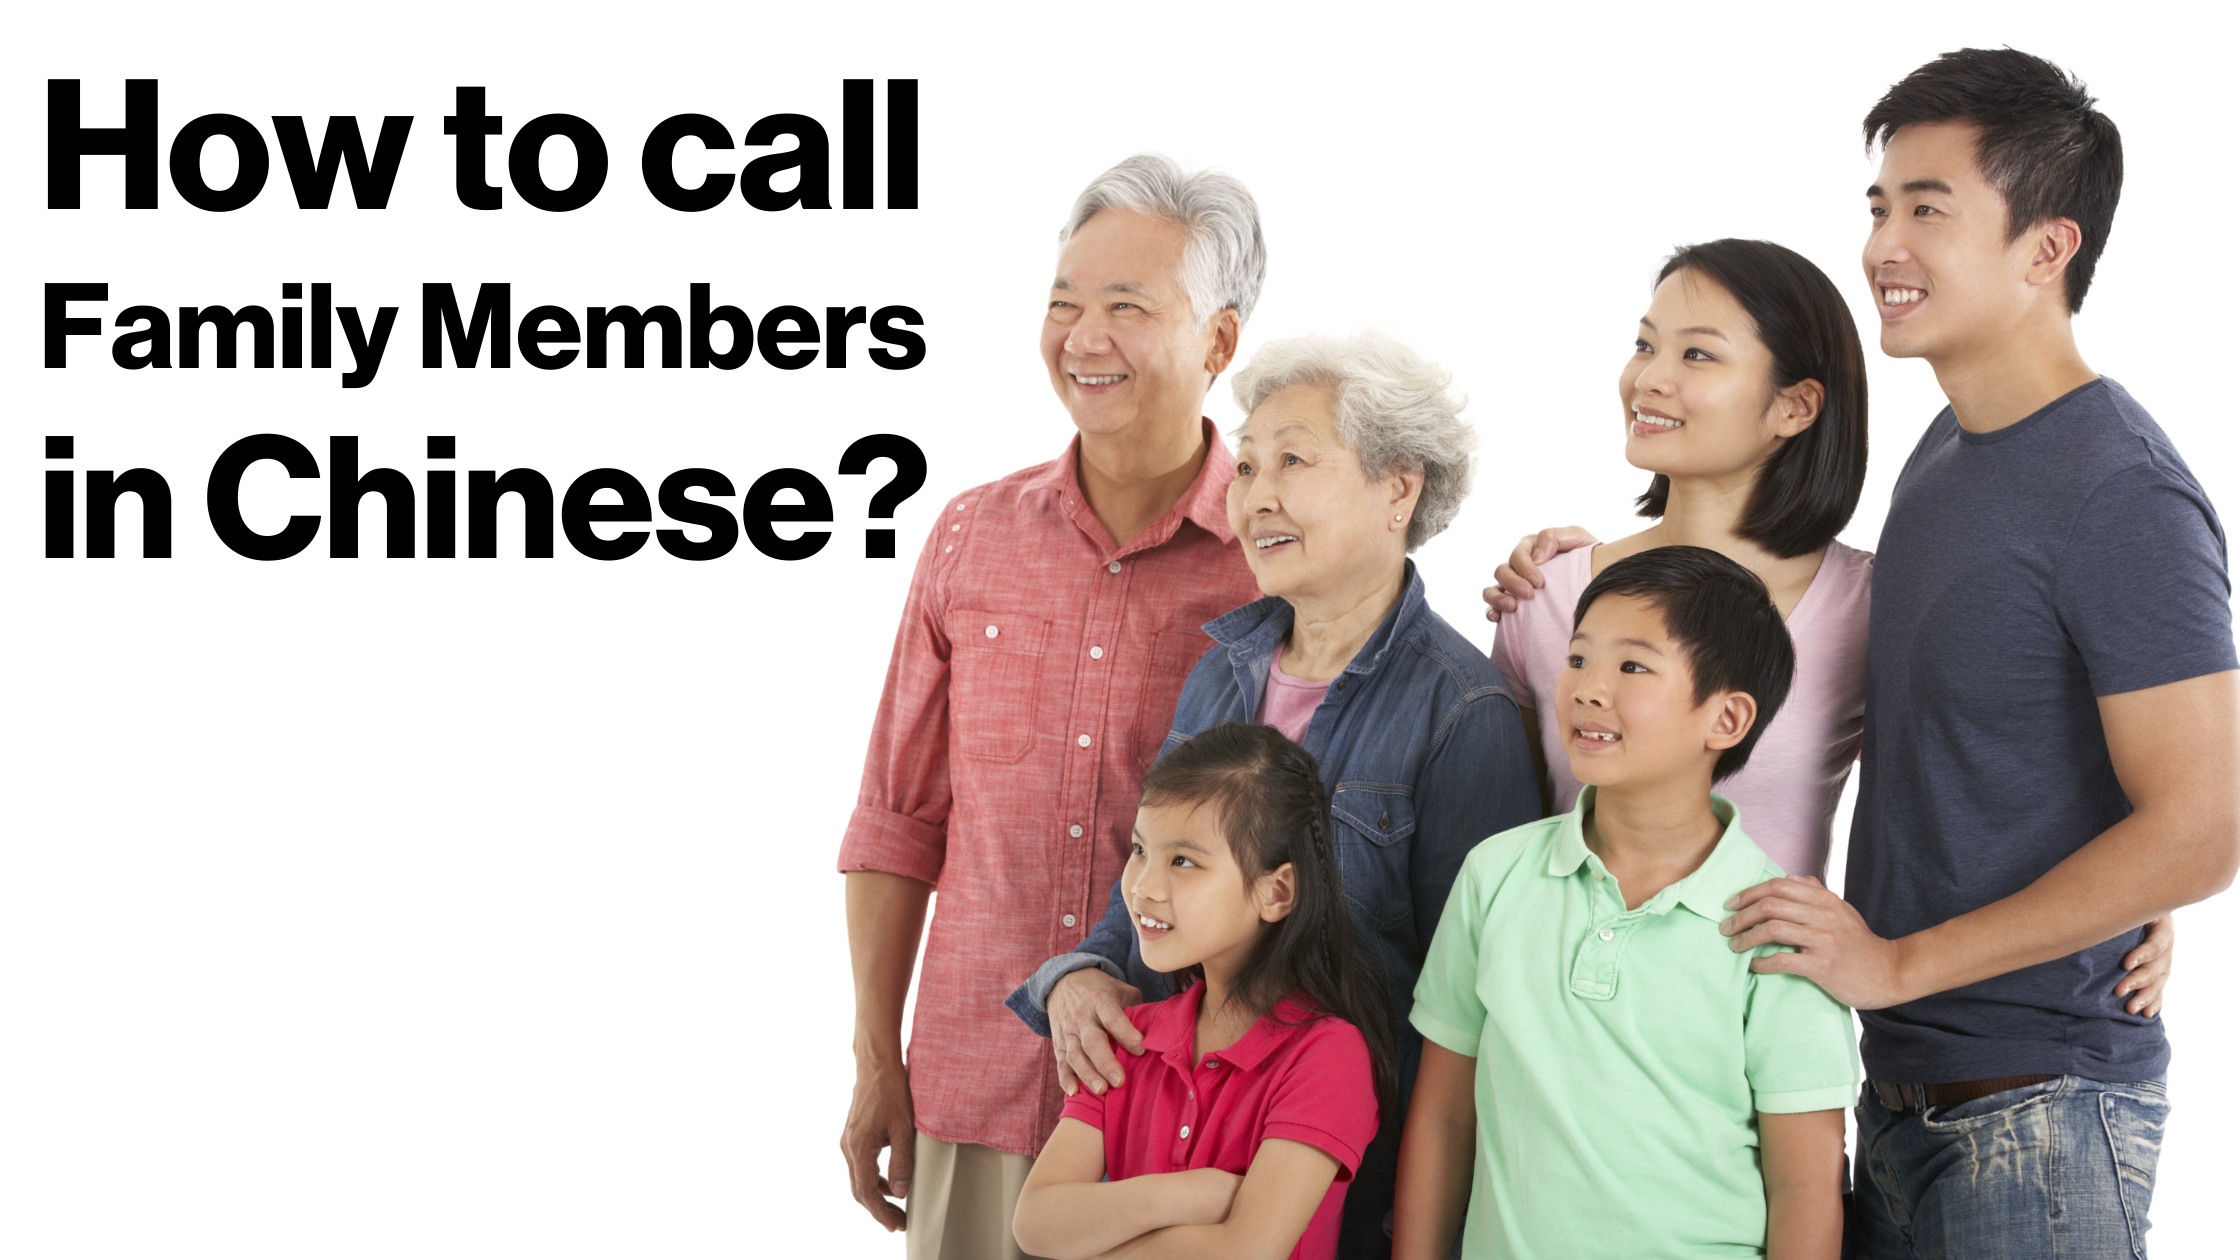 How to call family members in Chinese